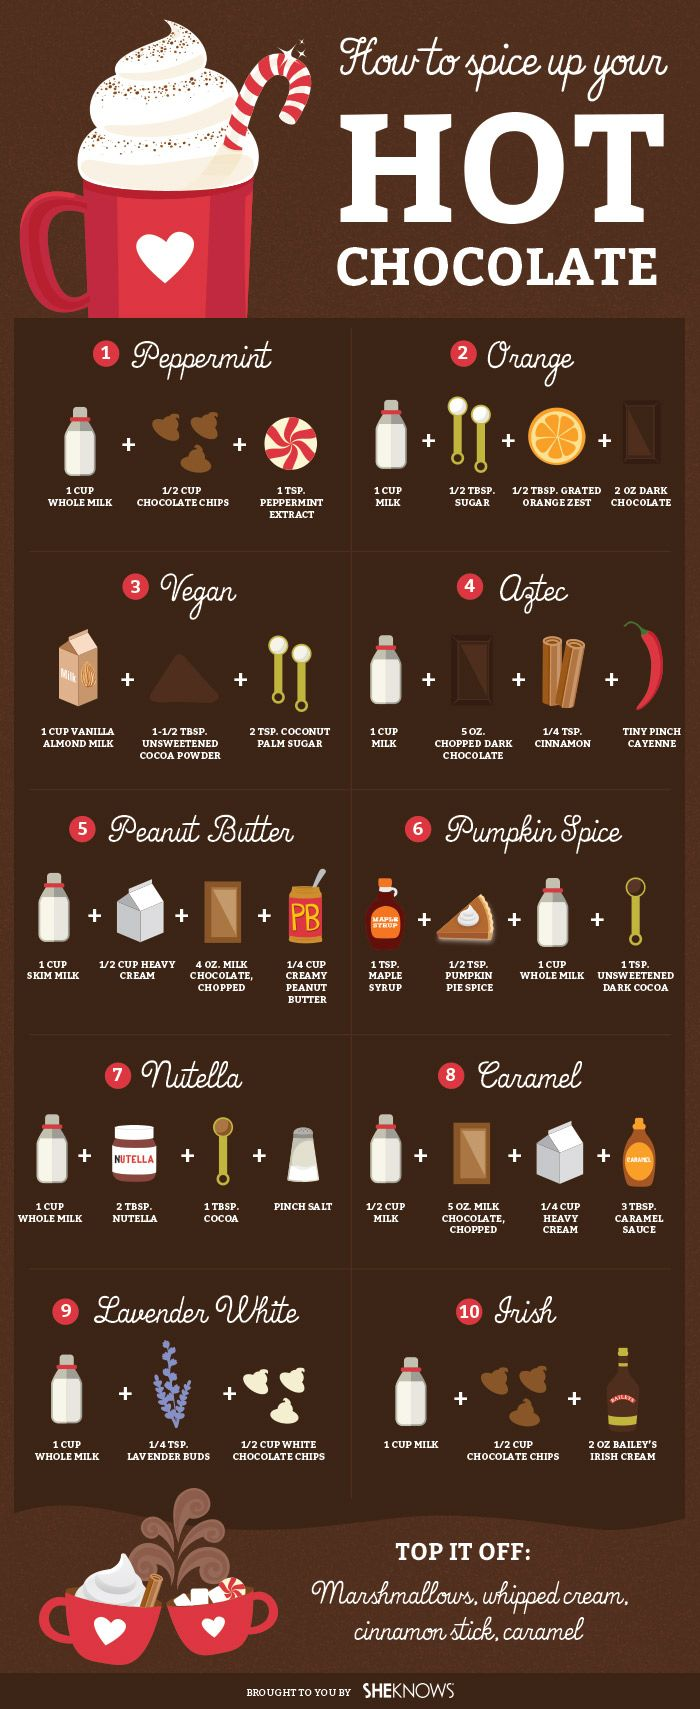 How to spice up your Hot Chocolate